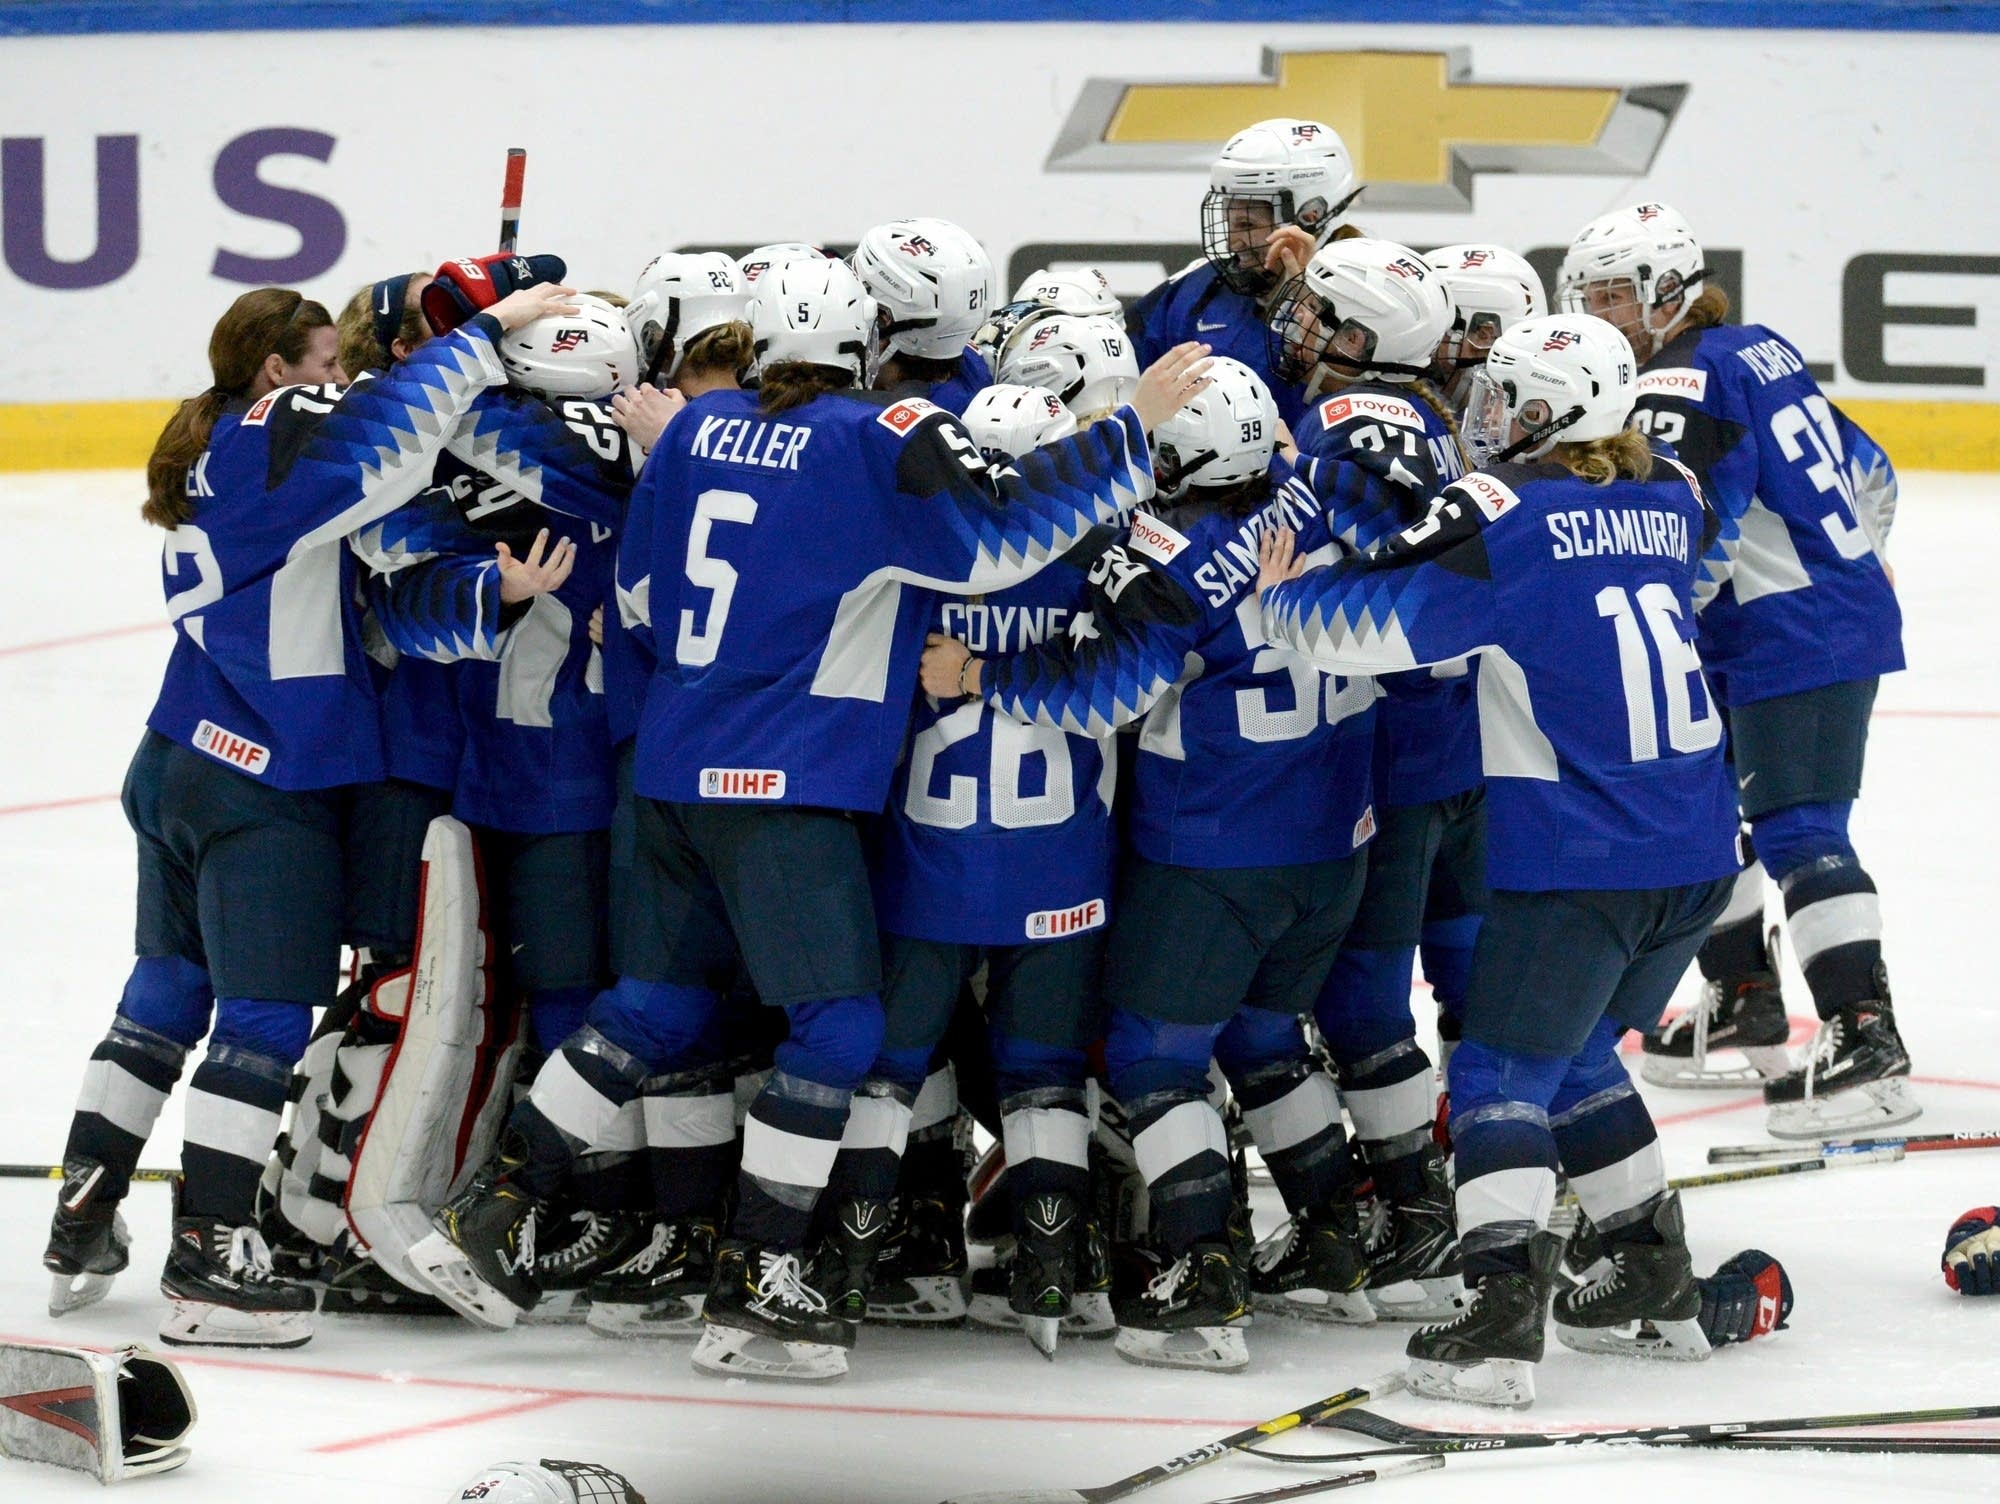 U.S. players celebrate their 2-1 shootout victory